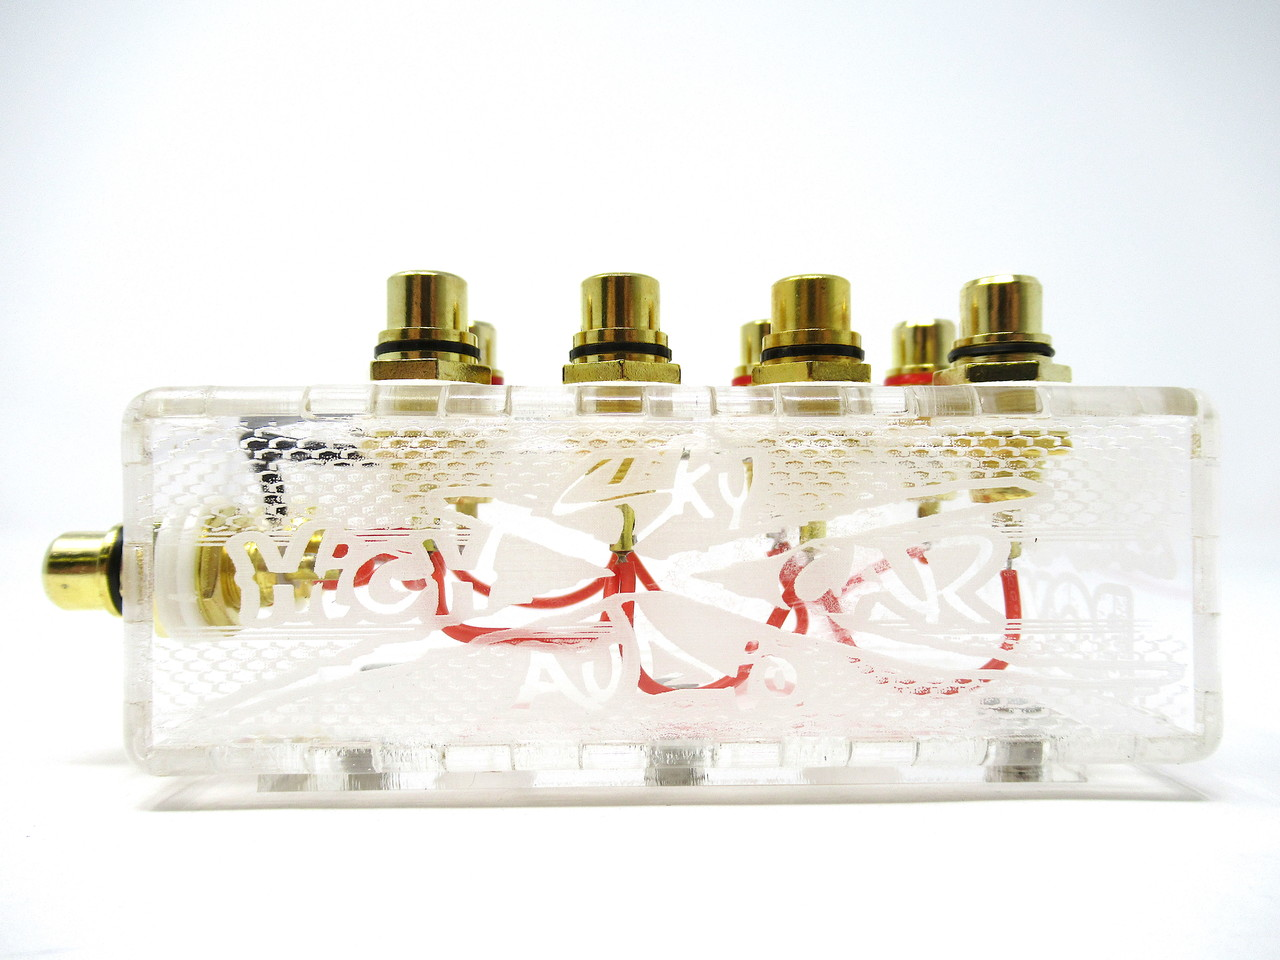 SHCA Clear 1 to 4 RCA Distribution block